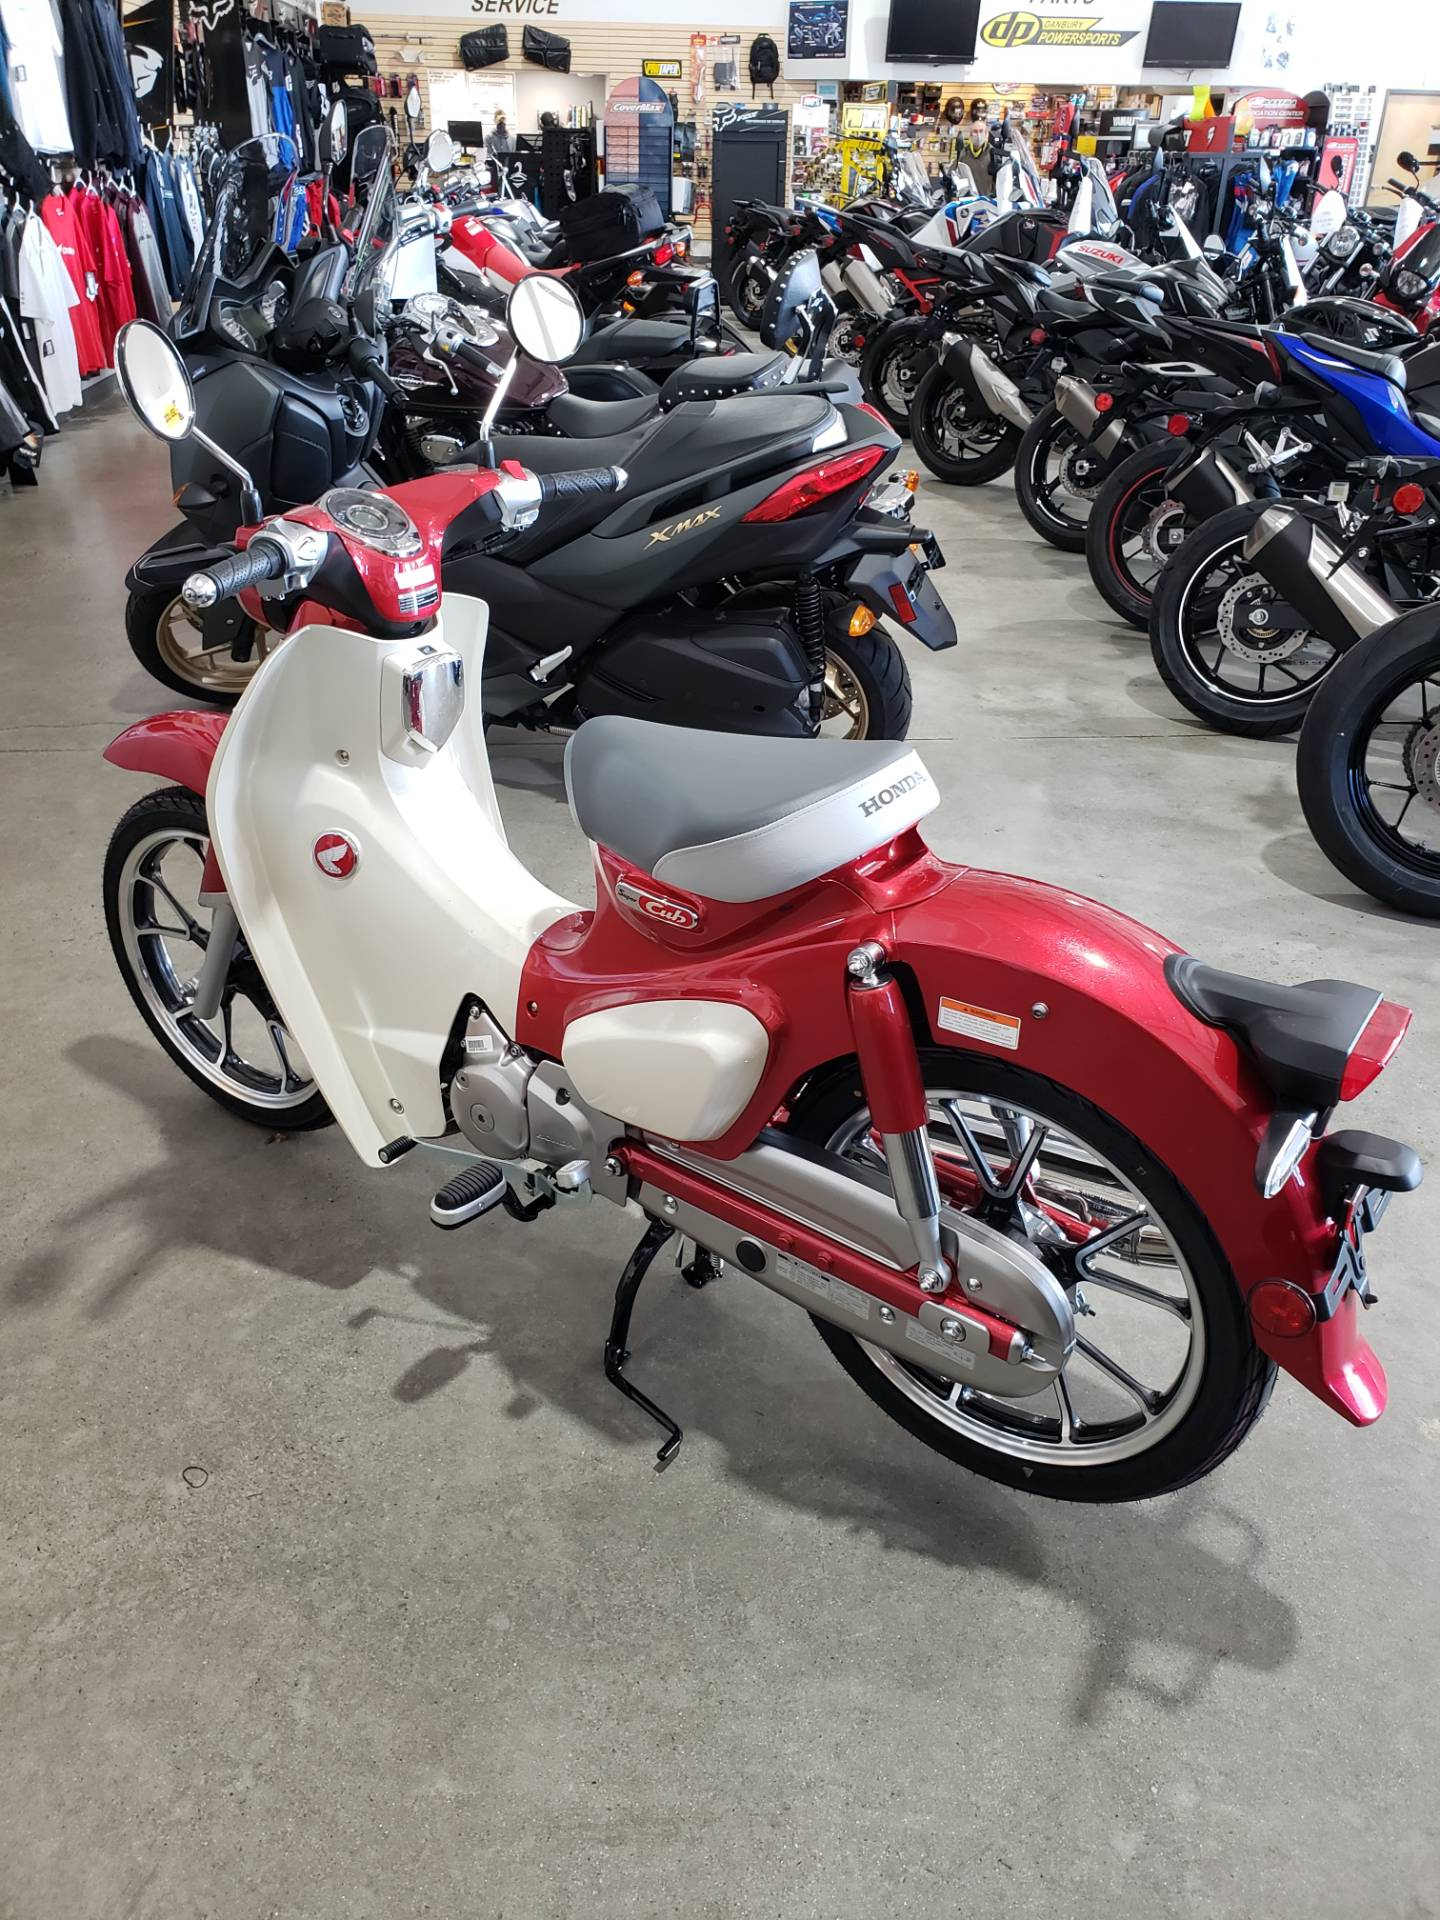 2021 Honda Super Cub 125 ABS in Danbury, Connecticut - Photo 1